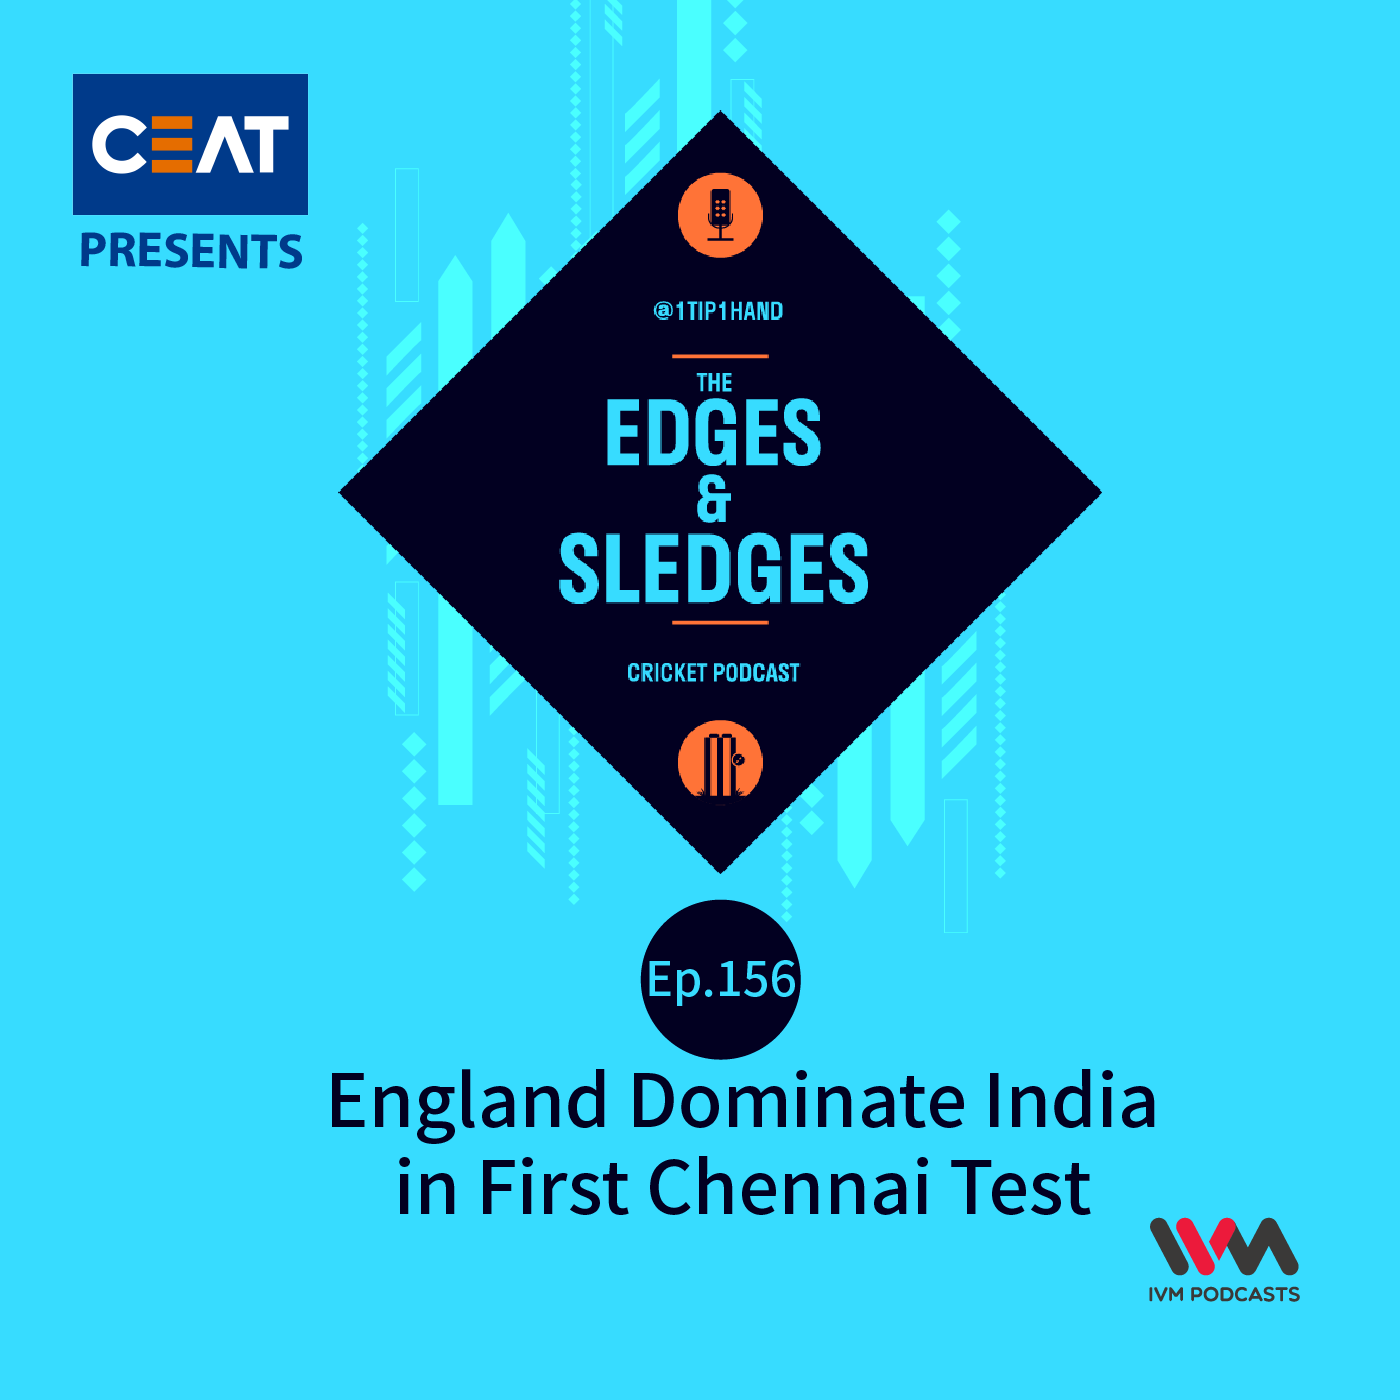 Ep. 156: England Dominate India in First Chennai Test